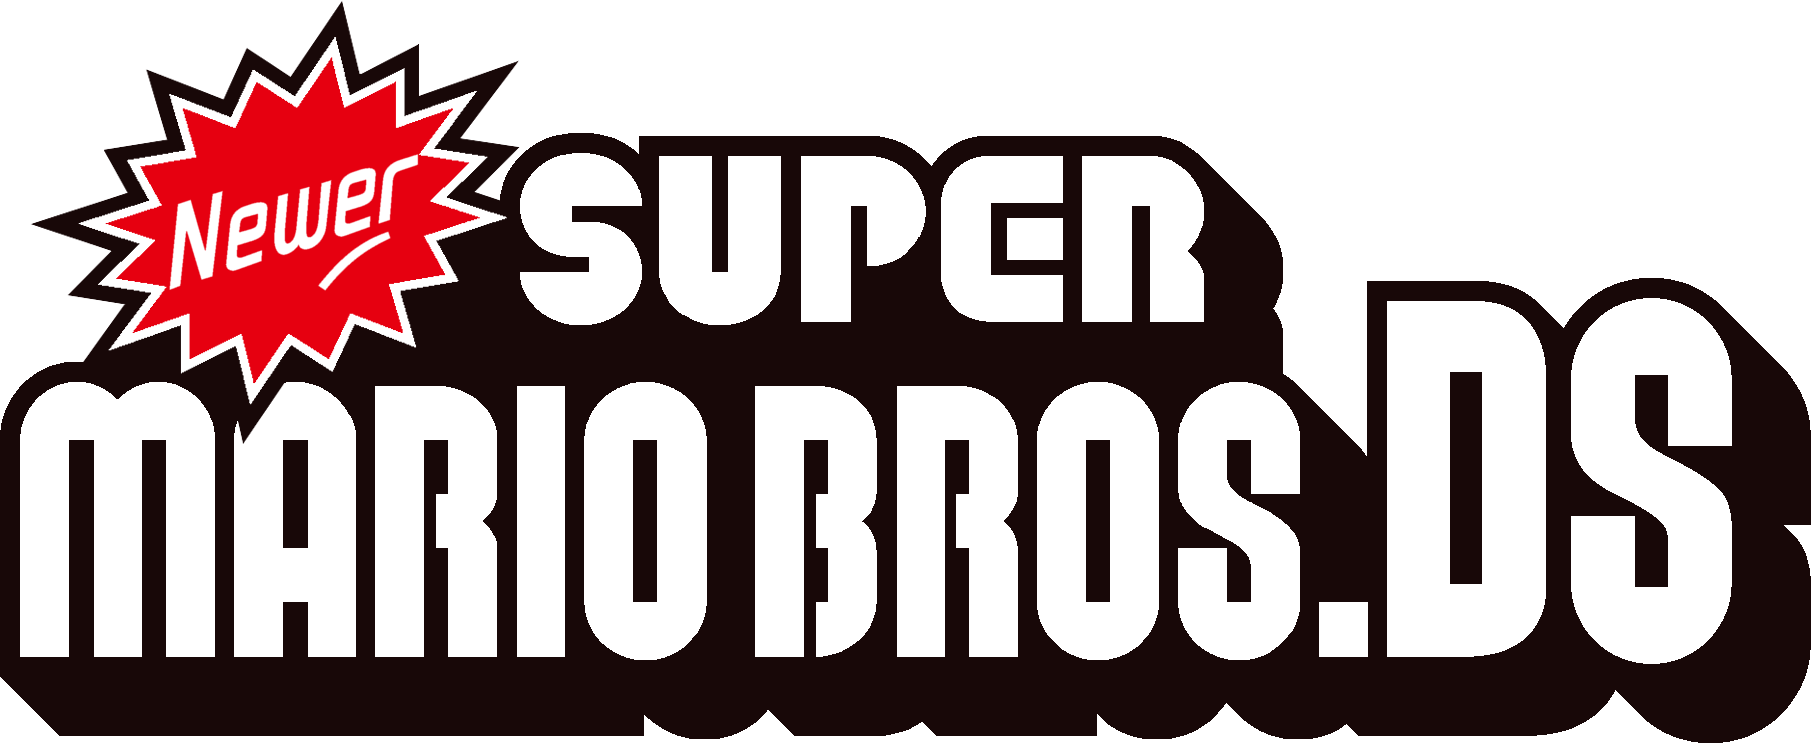 The Nsmb Hacking Domain Newer Super Mario Bros Ds